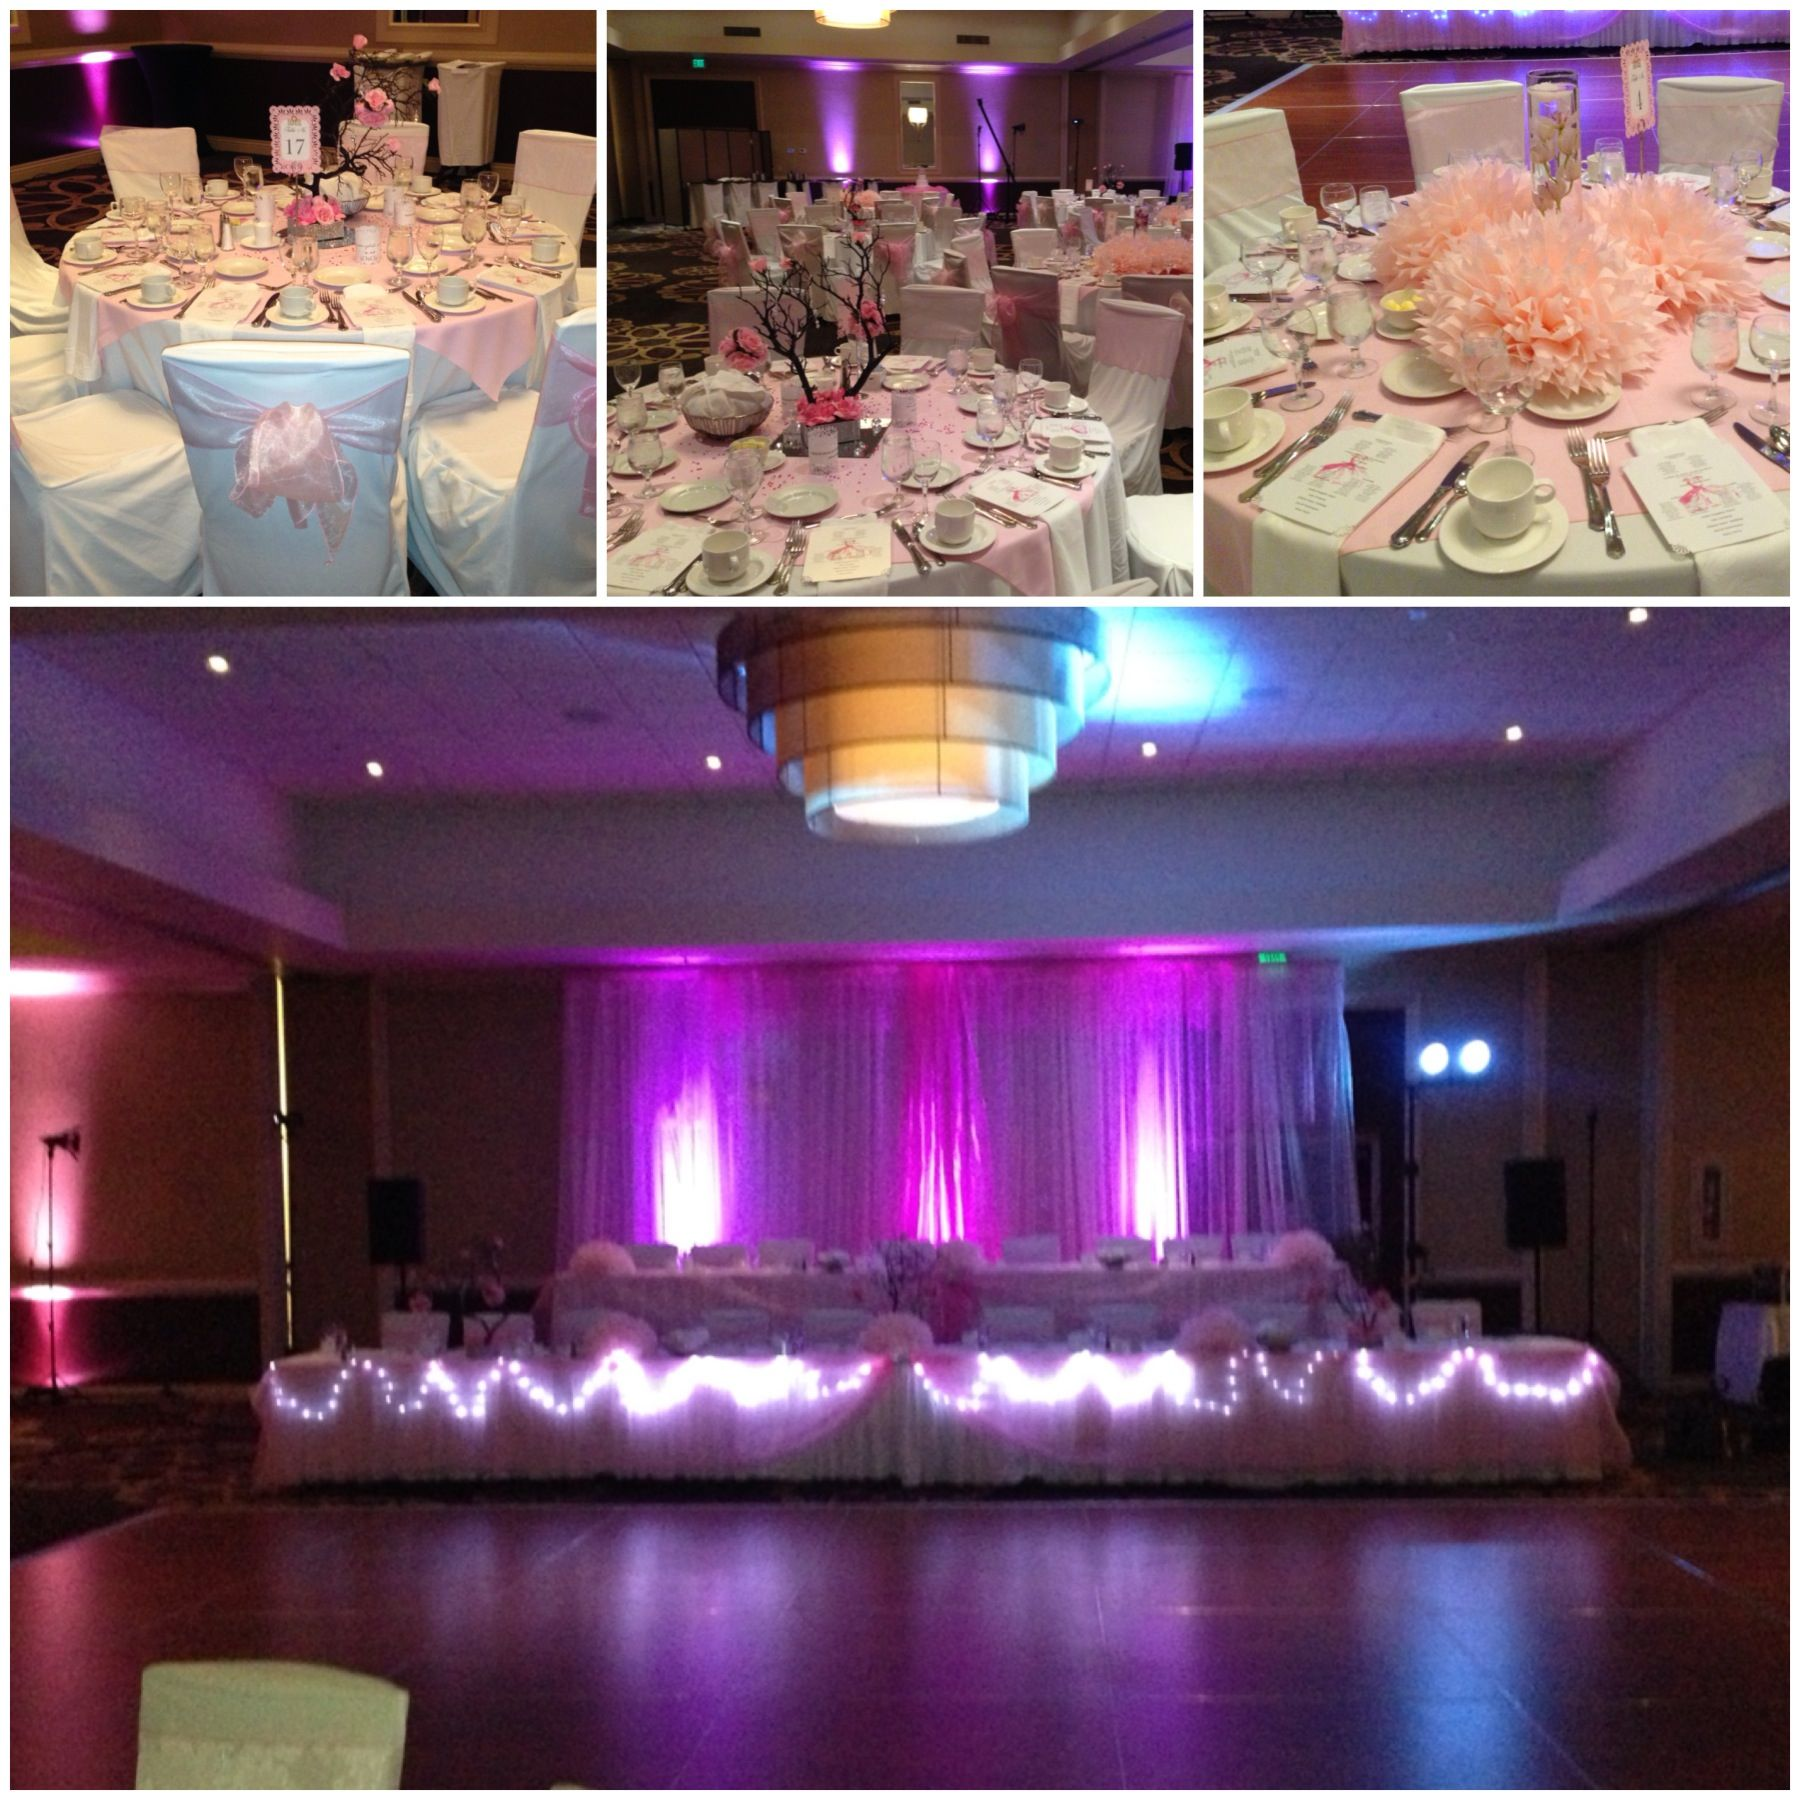 Gorgeous Reception Hall Decorations In Light Pink, With